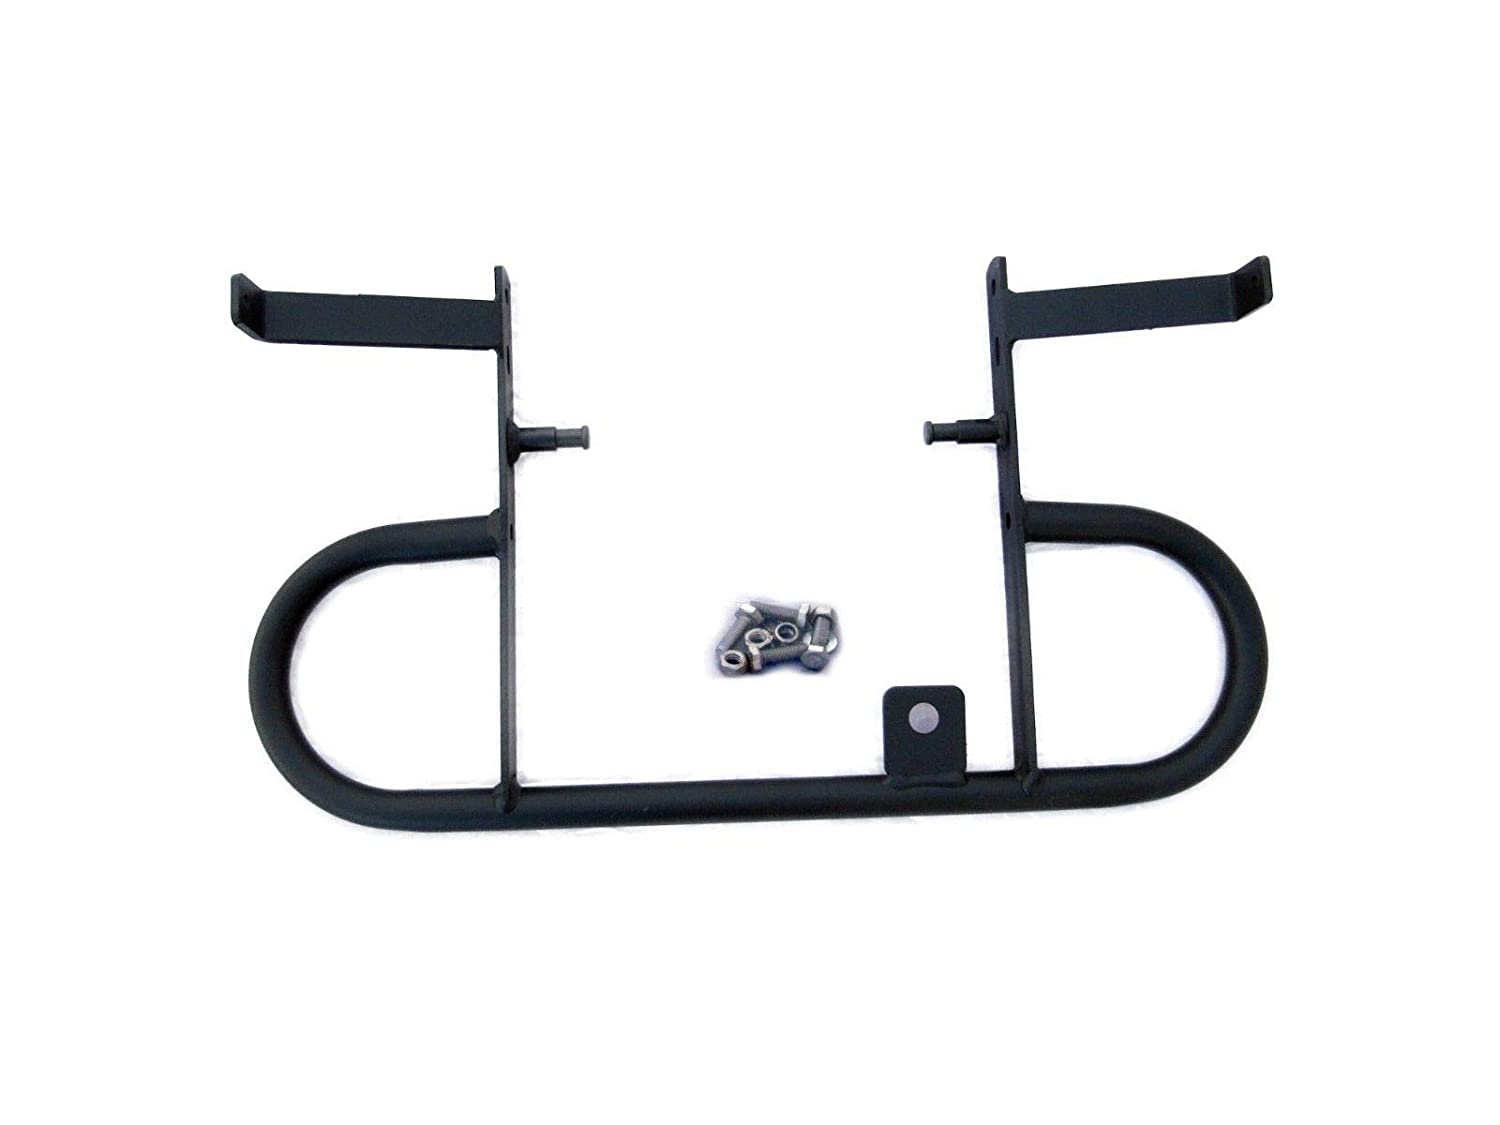 Rear Grab Bar Bumper for Yamaha Raptor 700 700R 2006-18 GBE208